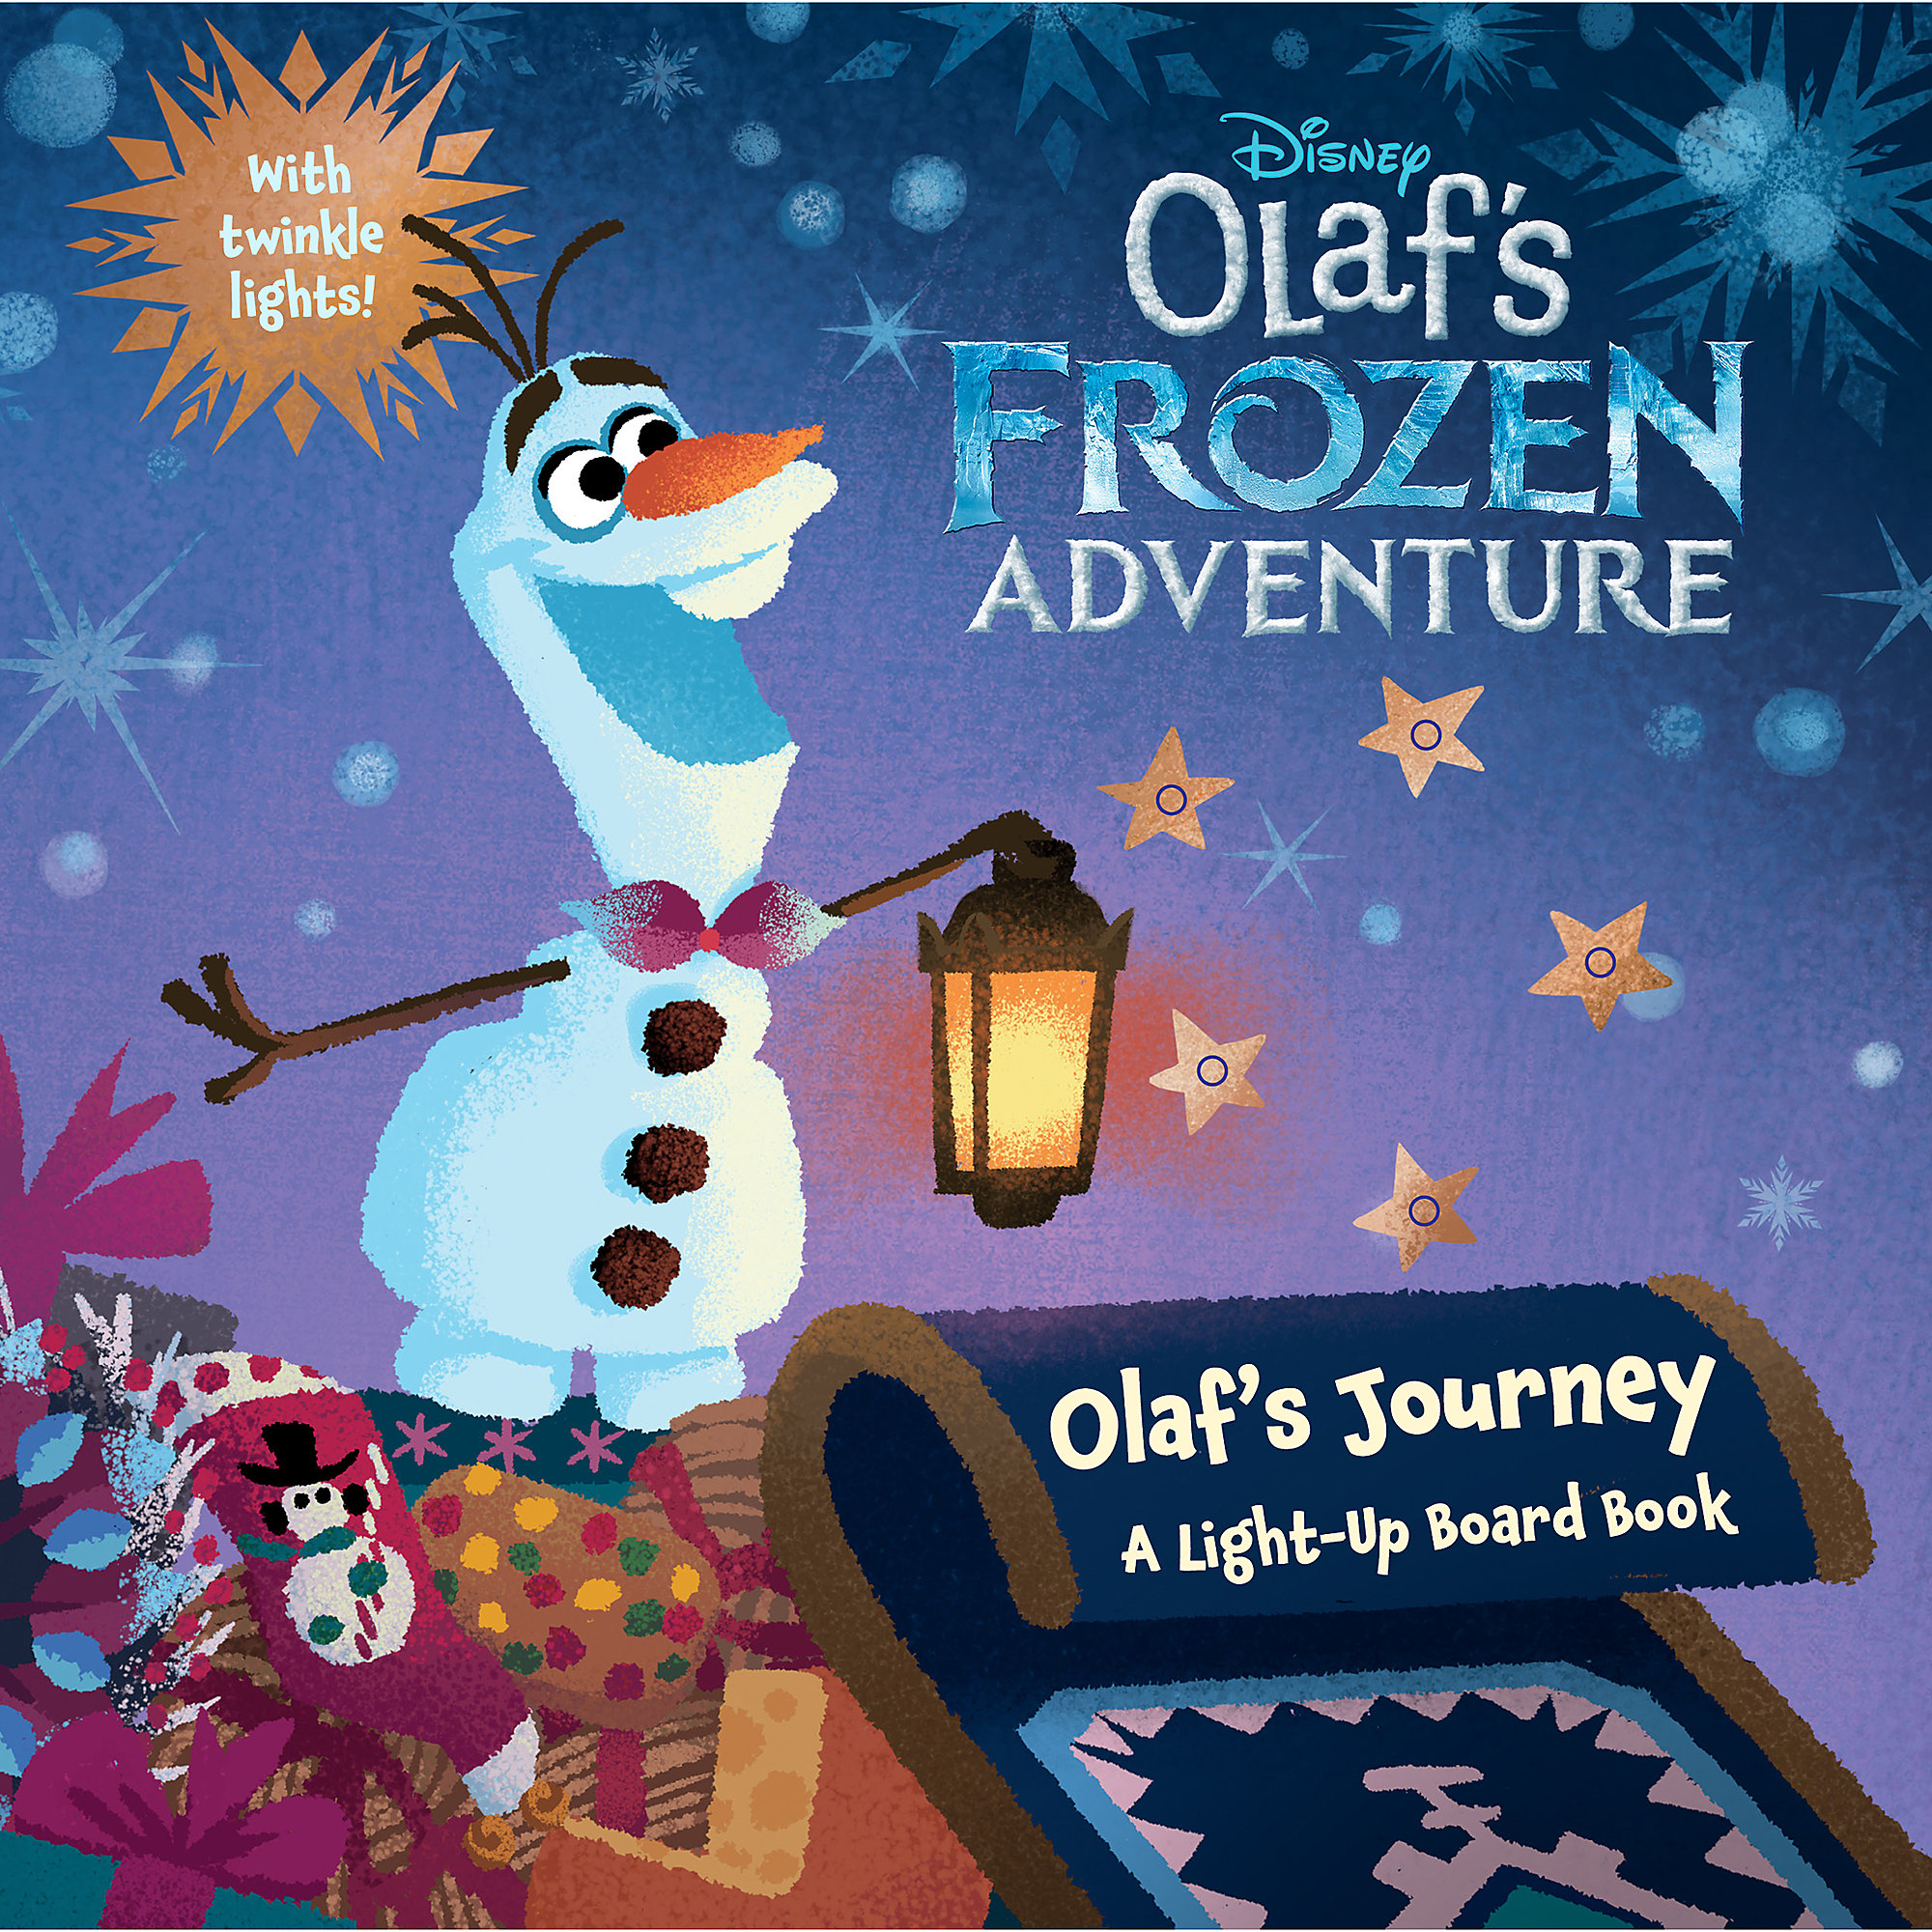 Olaf's Frozen Adventure: Olaf's Journey: A Light-Up Board Book